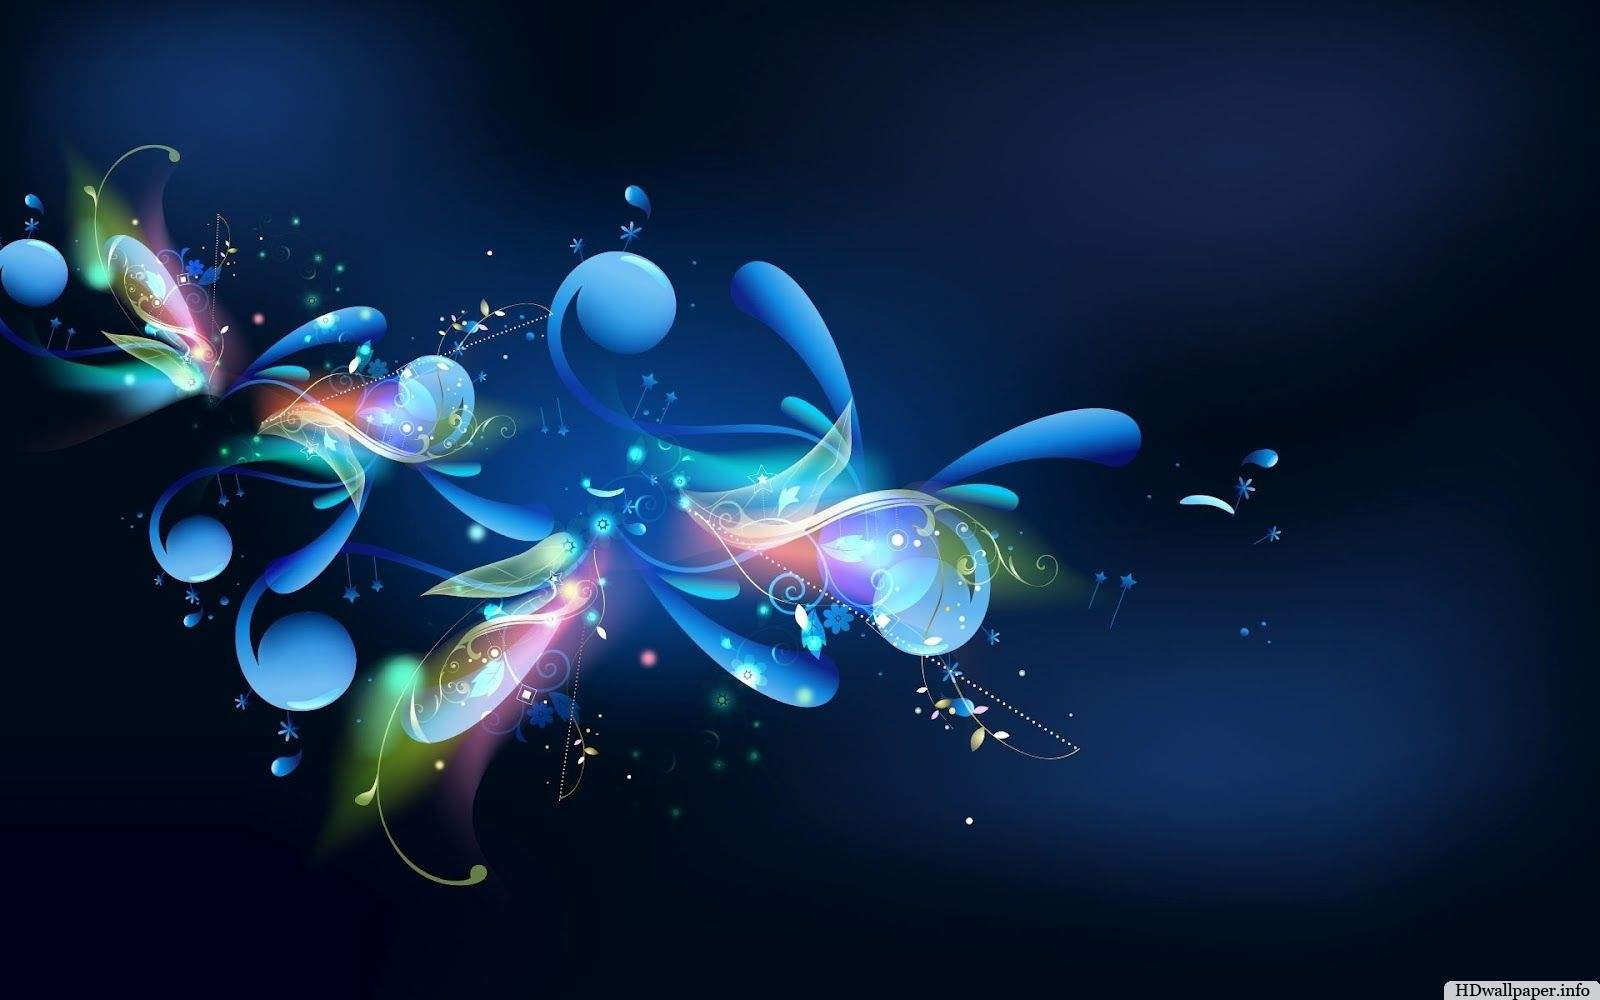 1600x1000px free windows wallpapers for desktop - wallpapersafari